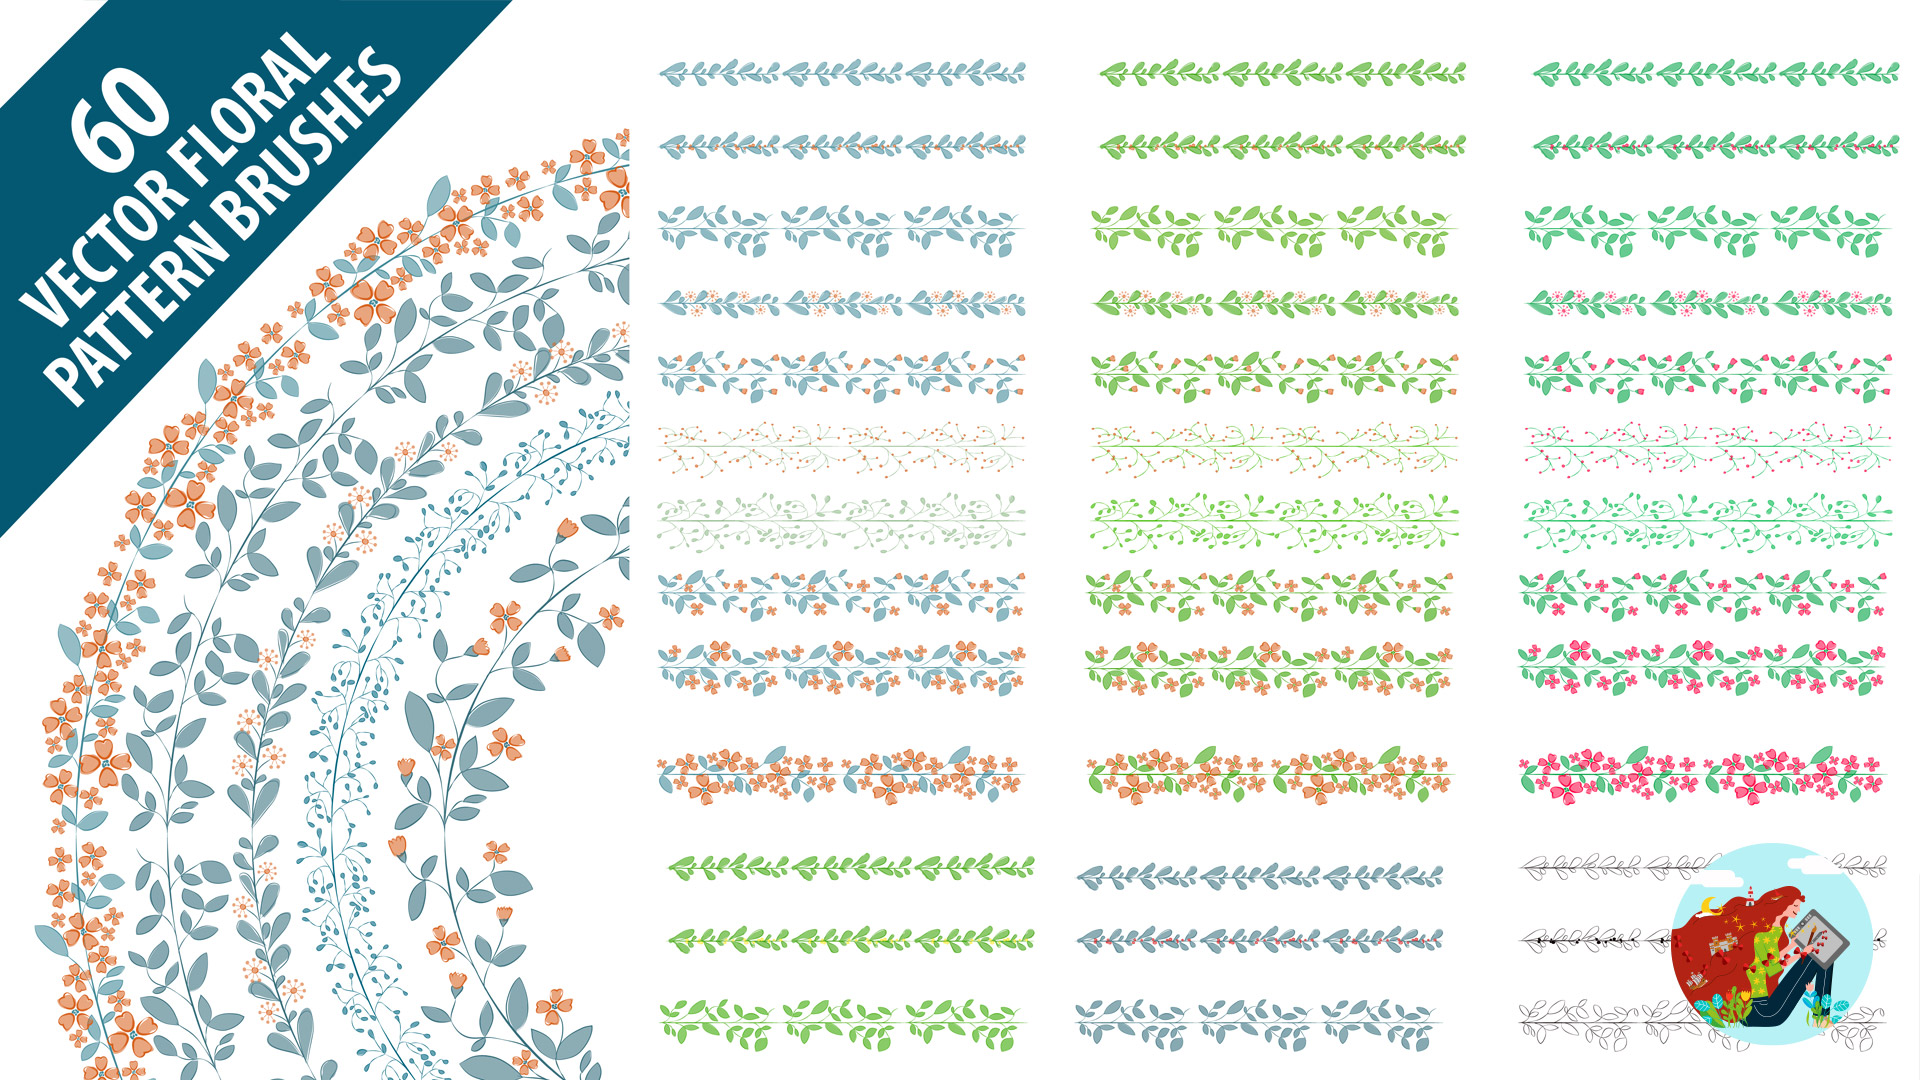 Set di pennelli pattern vettoriali per illustrazioni in Adobe Illustrator